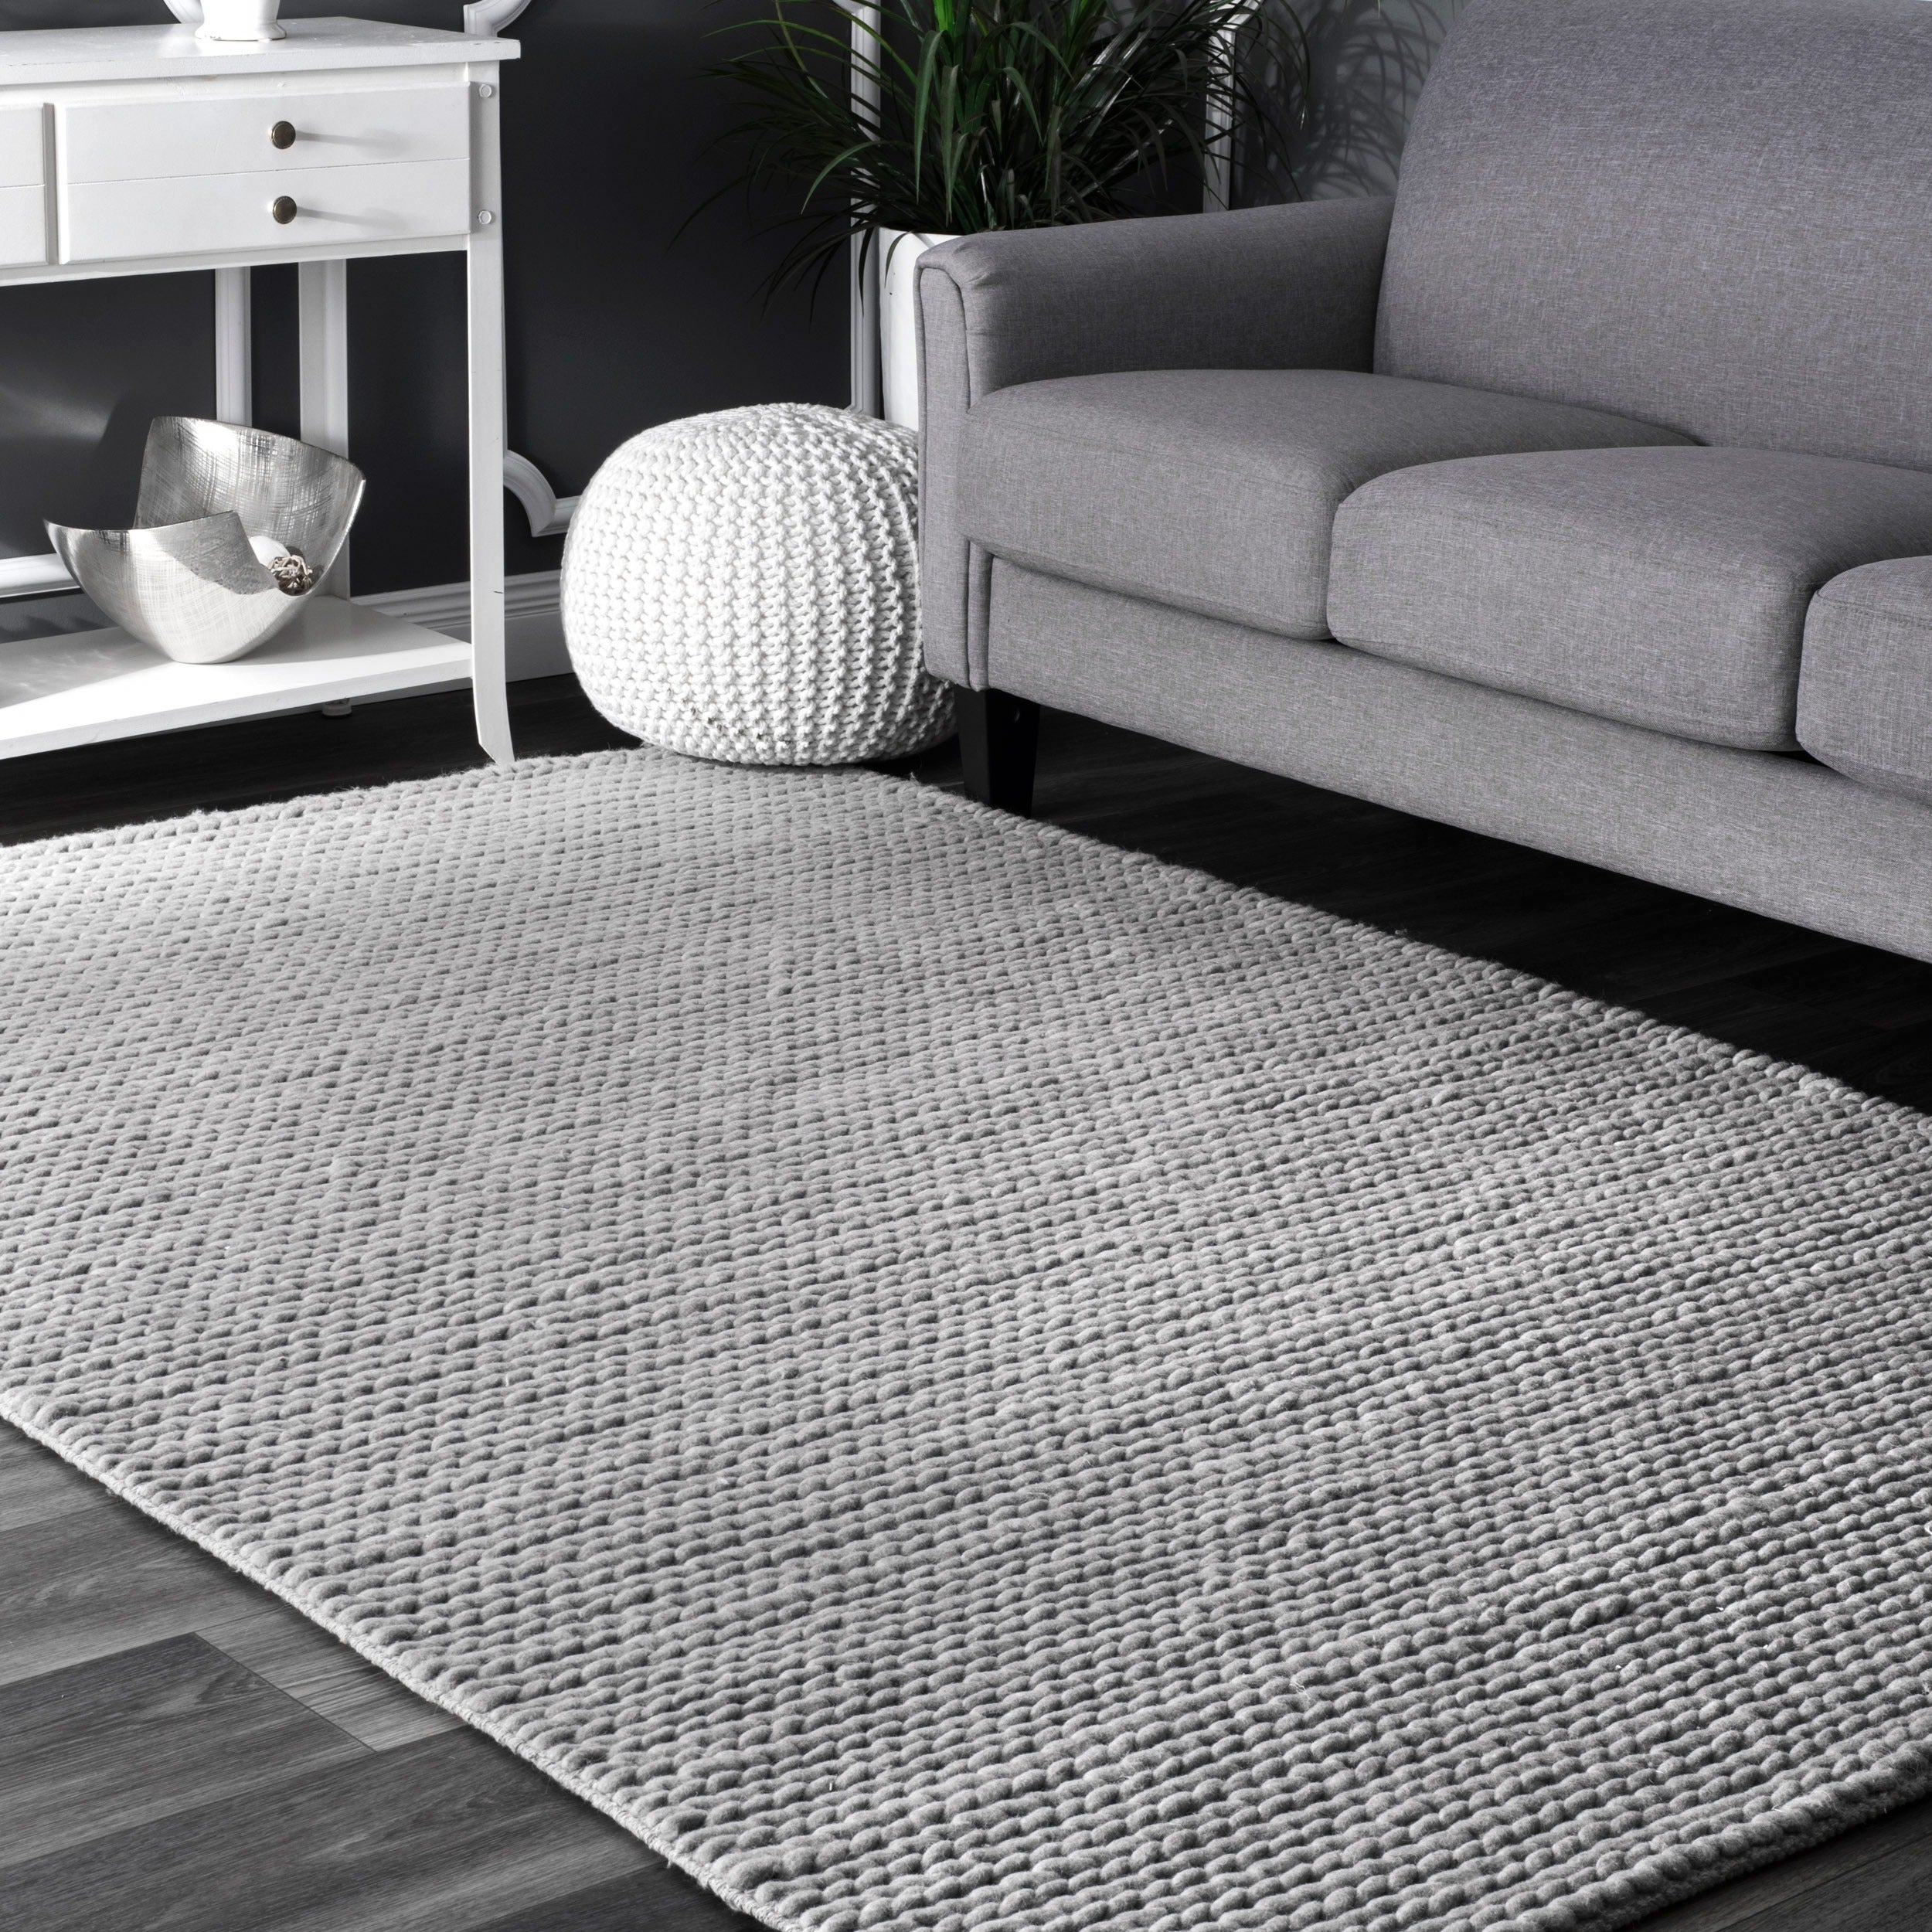 Shop Nuloom Handmade Braided Cable White New Zealand Wool Rug 5 X Under Carpet Flat Wiring System Additionally 8 On Sale Free Shipping Today 5187236